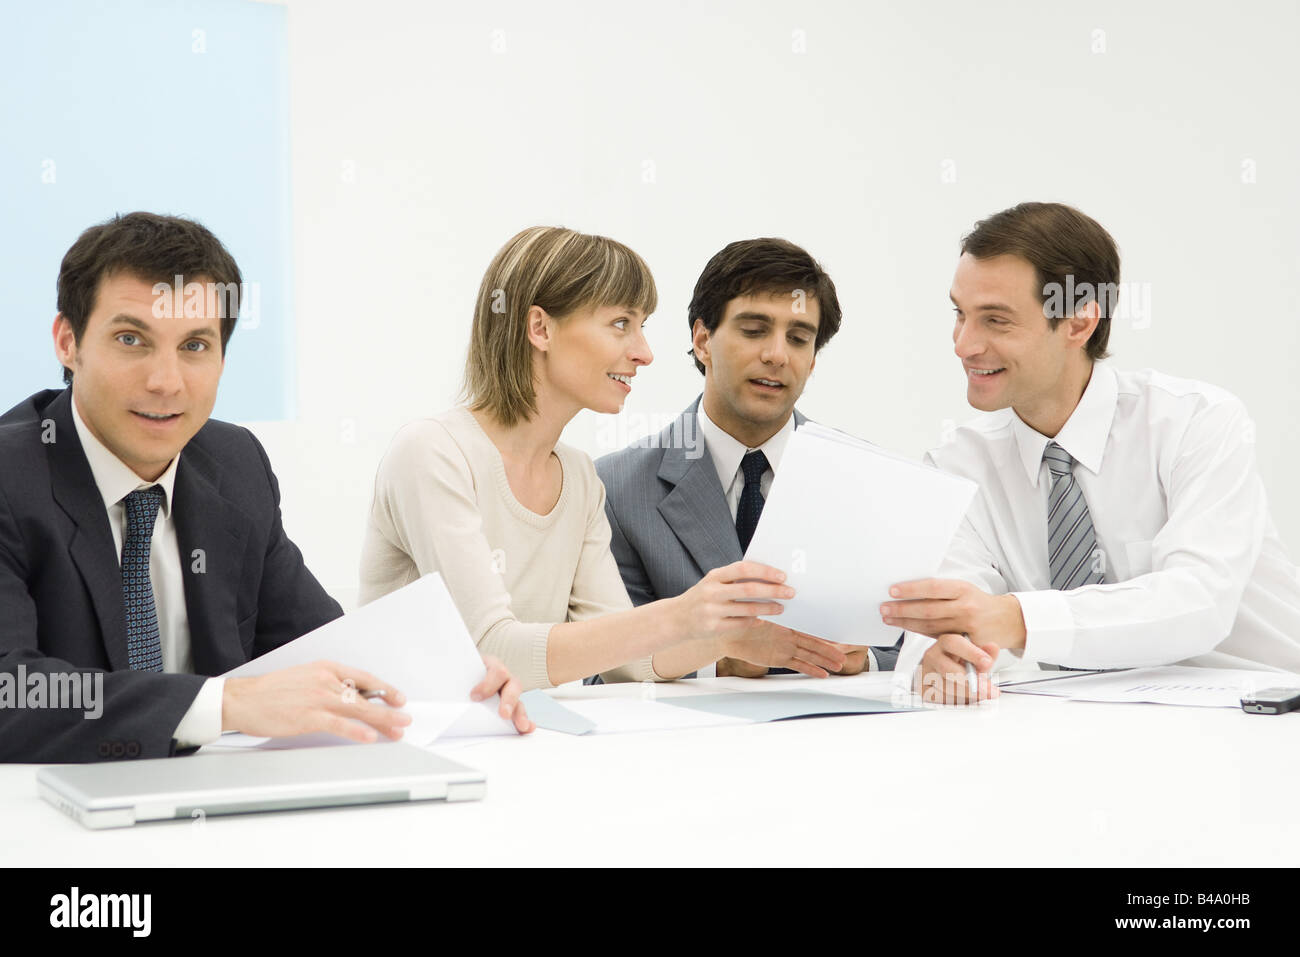 Business people in meeting, discussing document - Stock Image